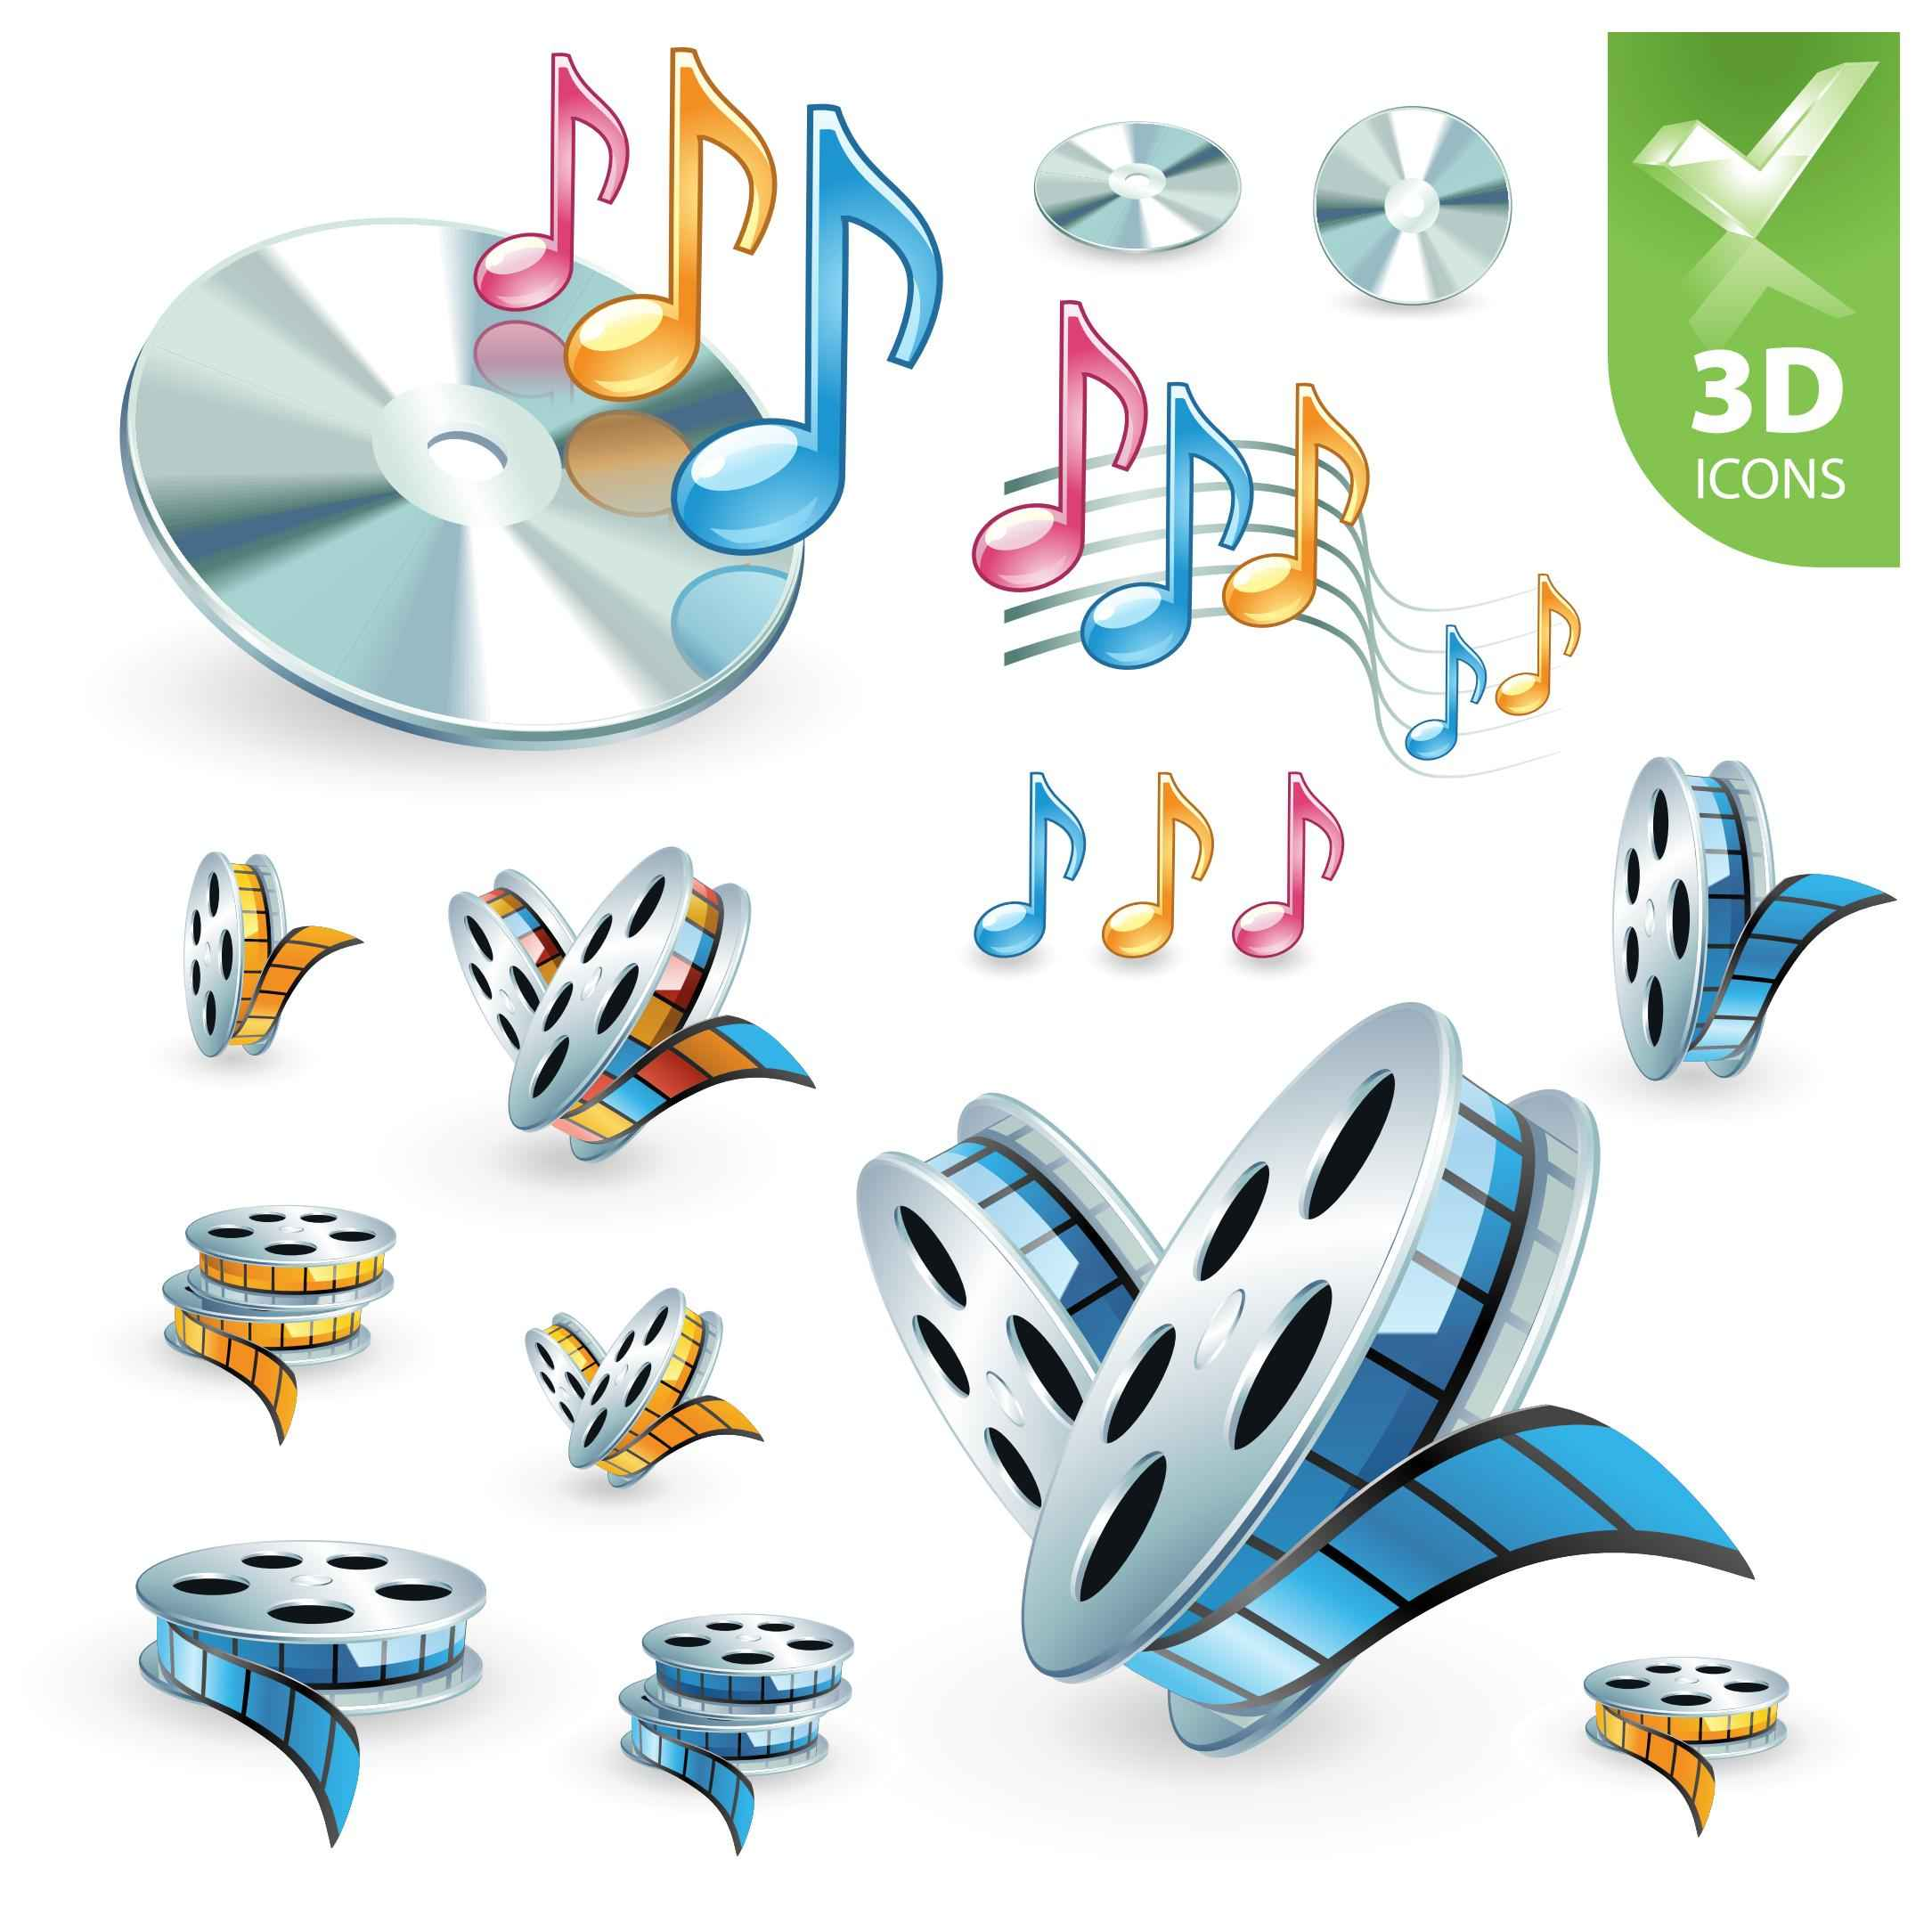 3D Audio Video Icon png